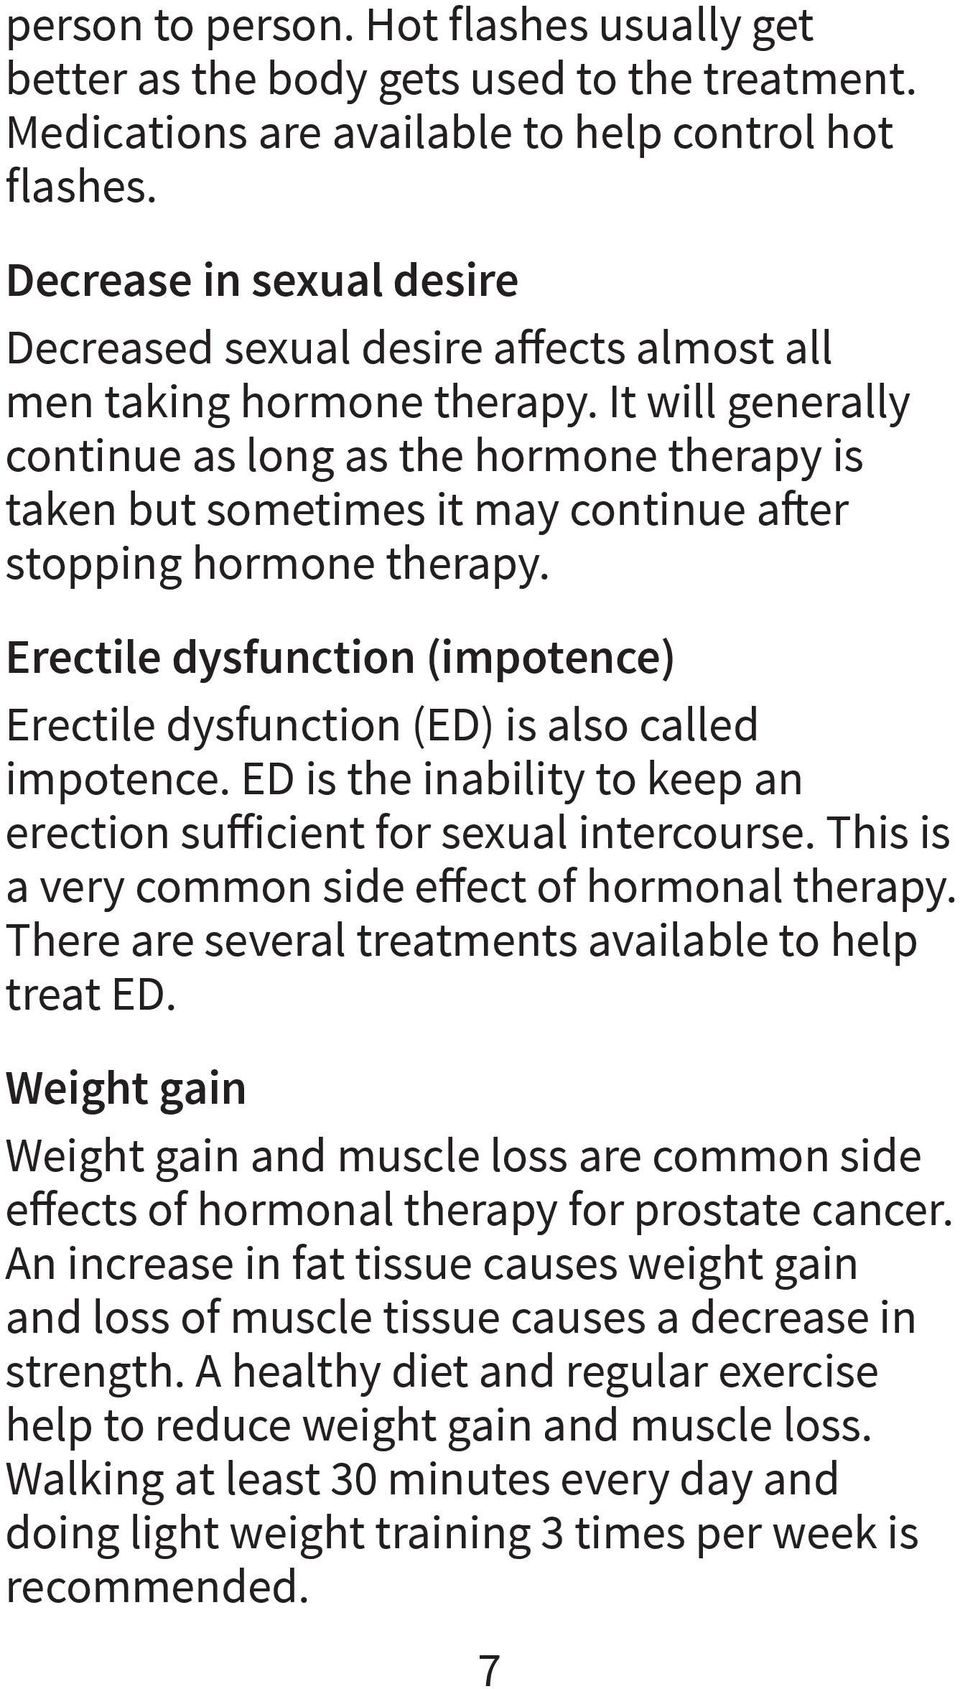 It will generally continue as long as the hormone therapy is taken but sometimes it may continue after stopping hormone therapy.